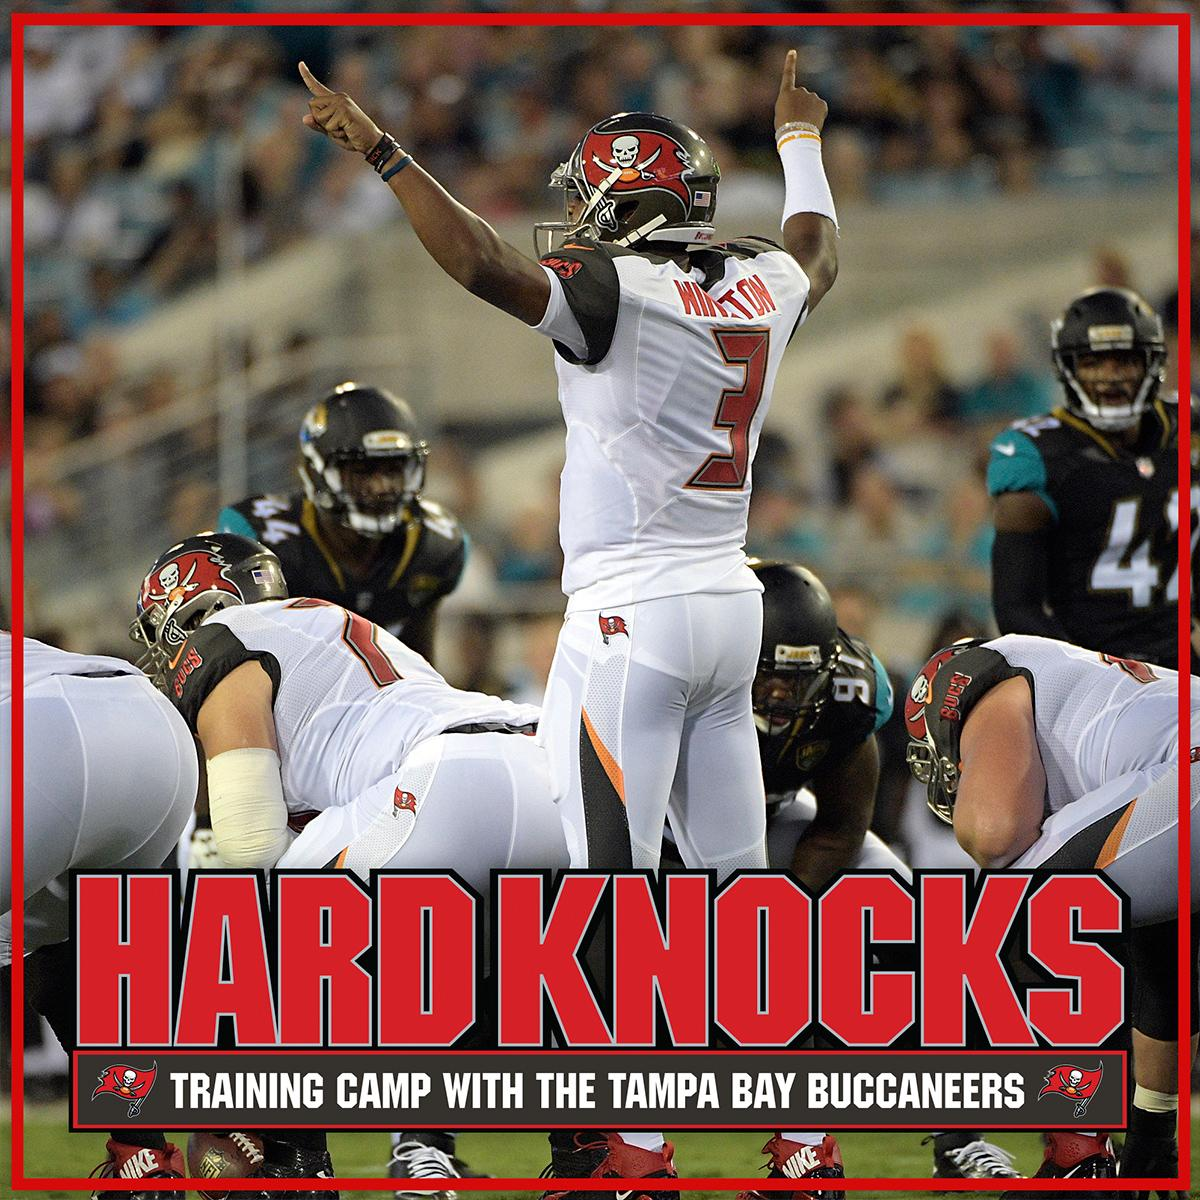 A new episode of #HardKnocks with the @TBBuccaneers starts NOW on HBO! https://t.co/dmhqXxUkid